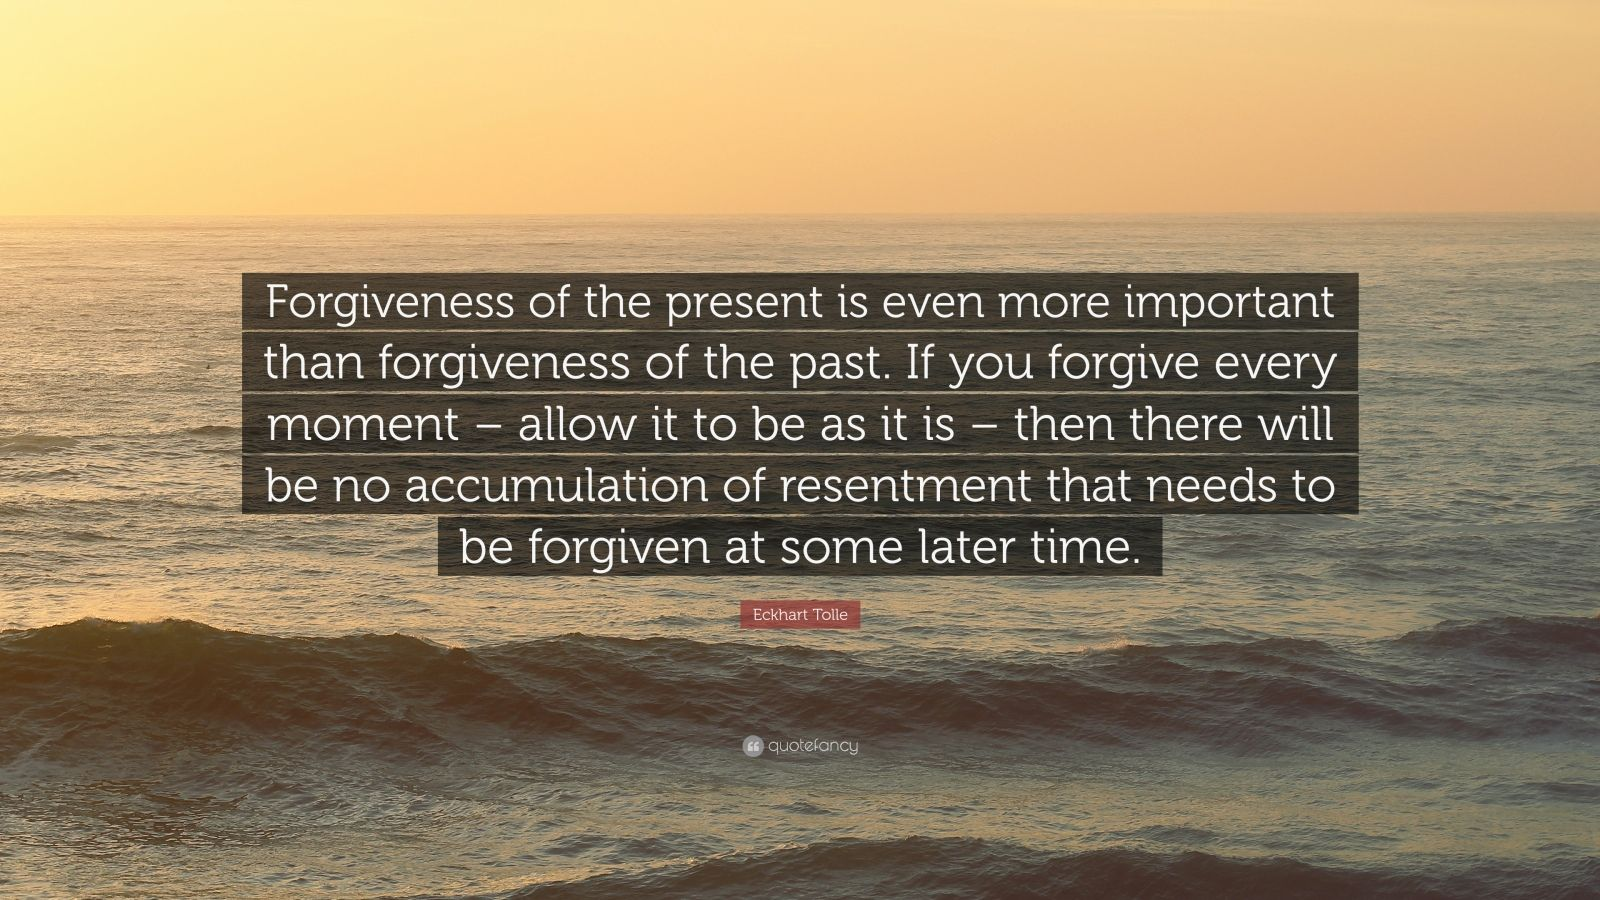 """Eckhart Tolle Quote: """"Forgiveness of the present is even more important than forgiveness of the past. If you forgive every moment – allow it to be as it is – then there will be no accumulation of resentment that needs to be forgiven at some later time."""""""